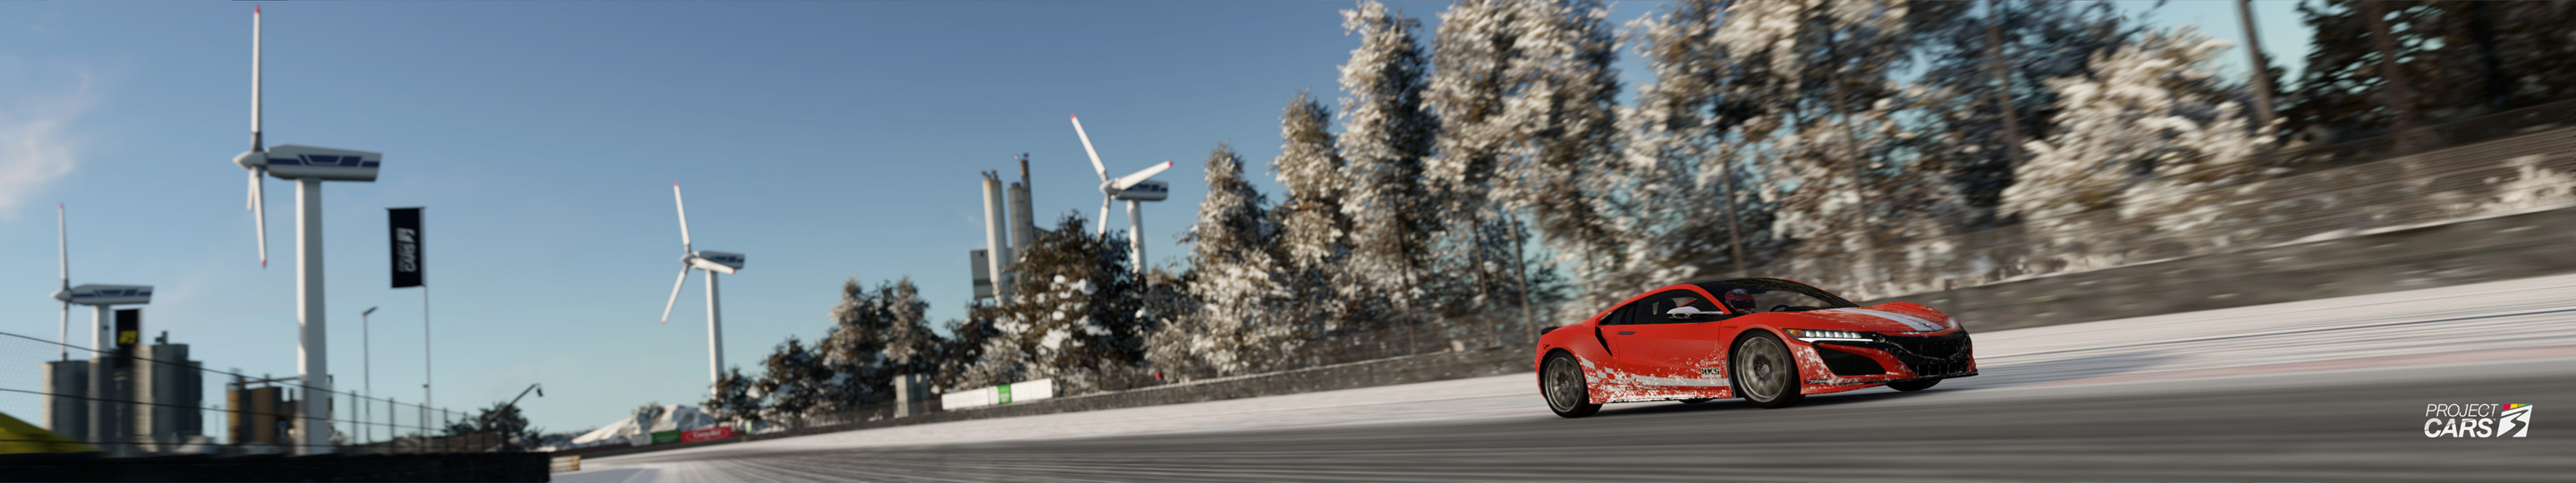 0 PROJECT CARS 3 ACURA NSX 2020 at ZOLDER Snow copy.jpg